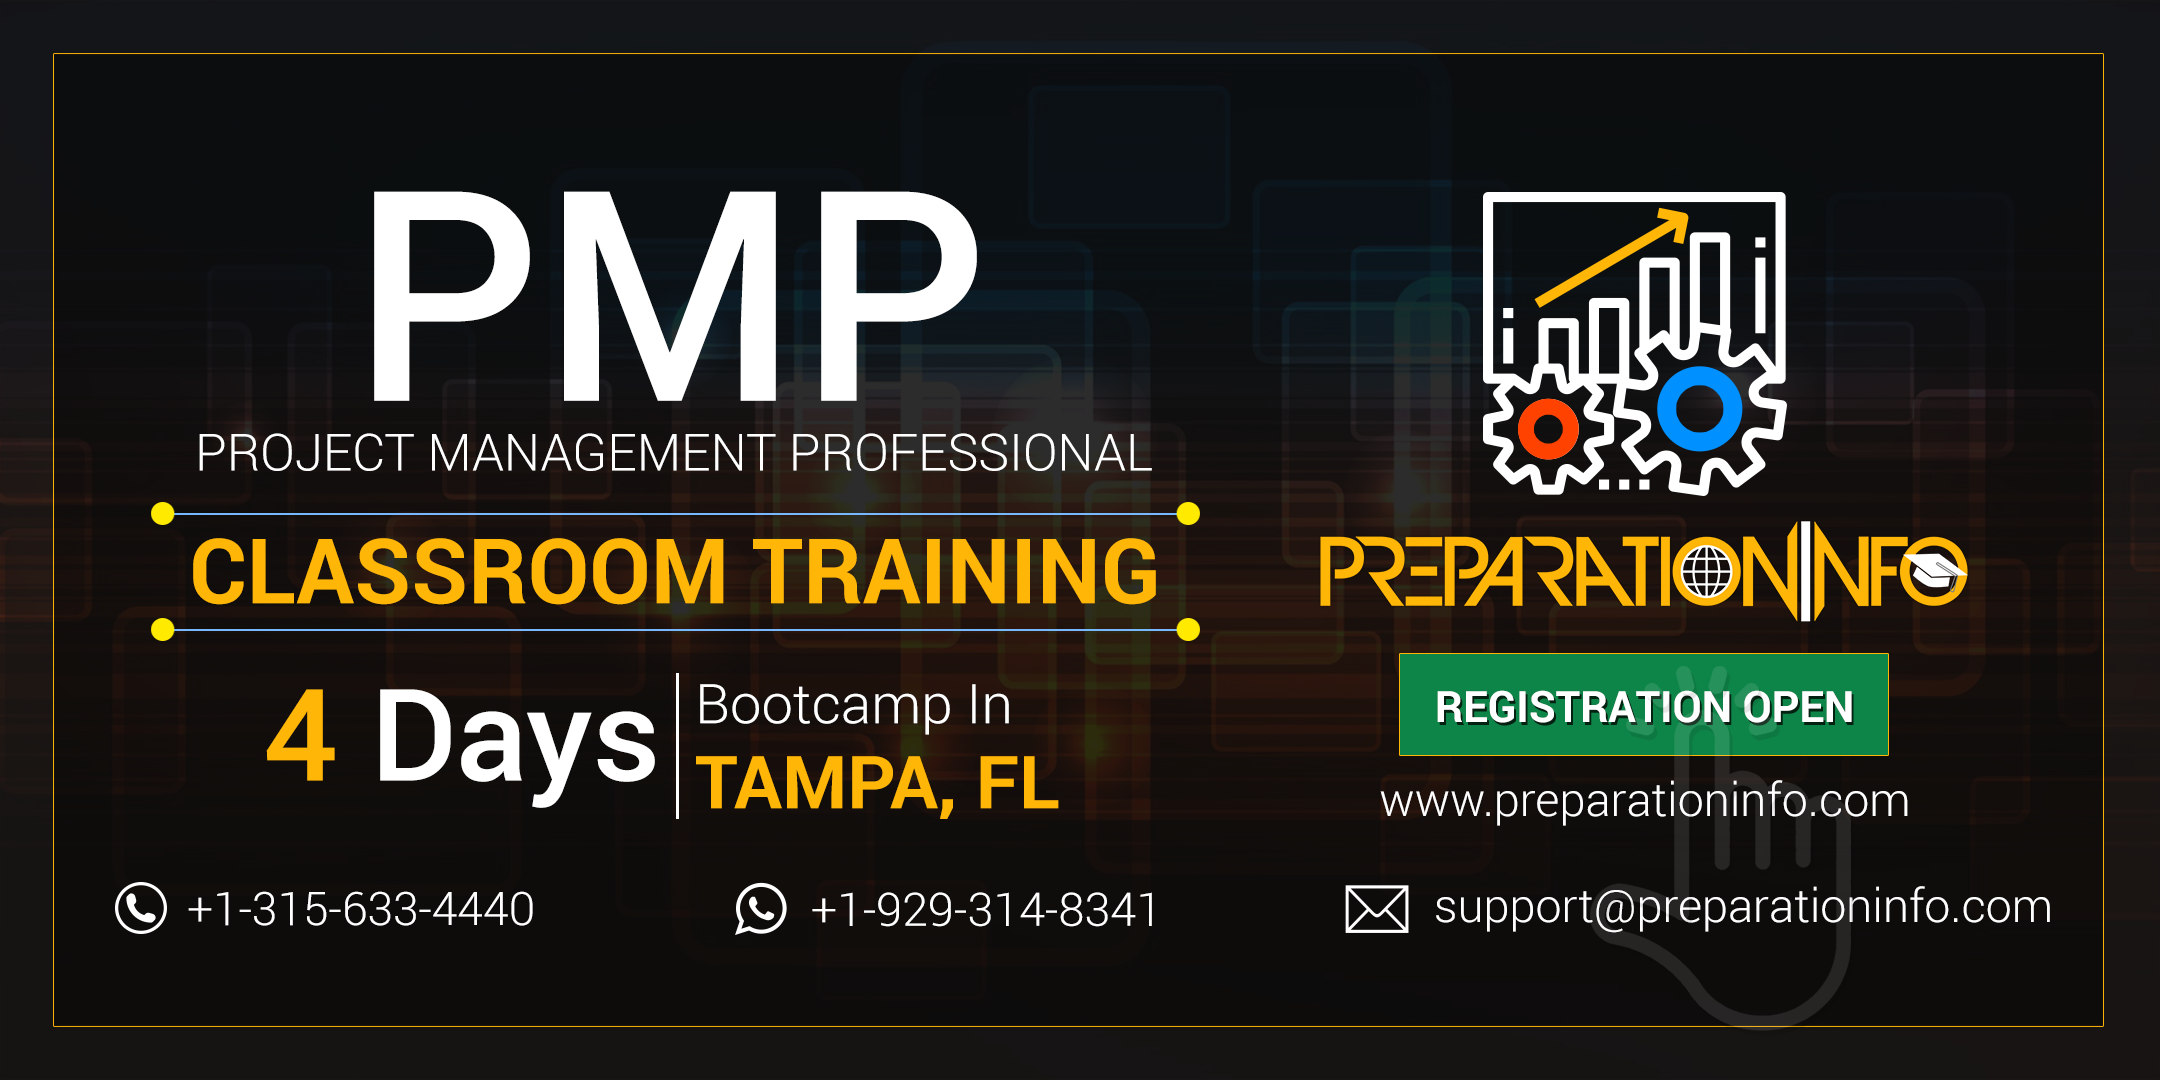 Exclusive PMP Certification and Training Program in Tampa, FL